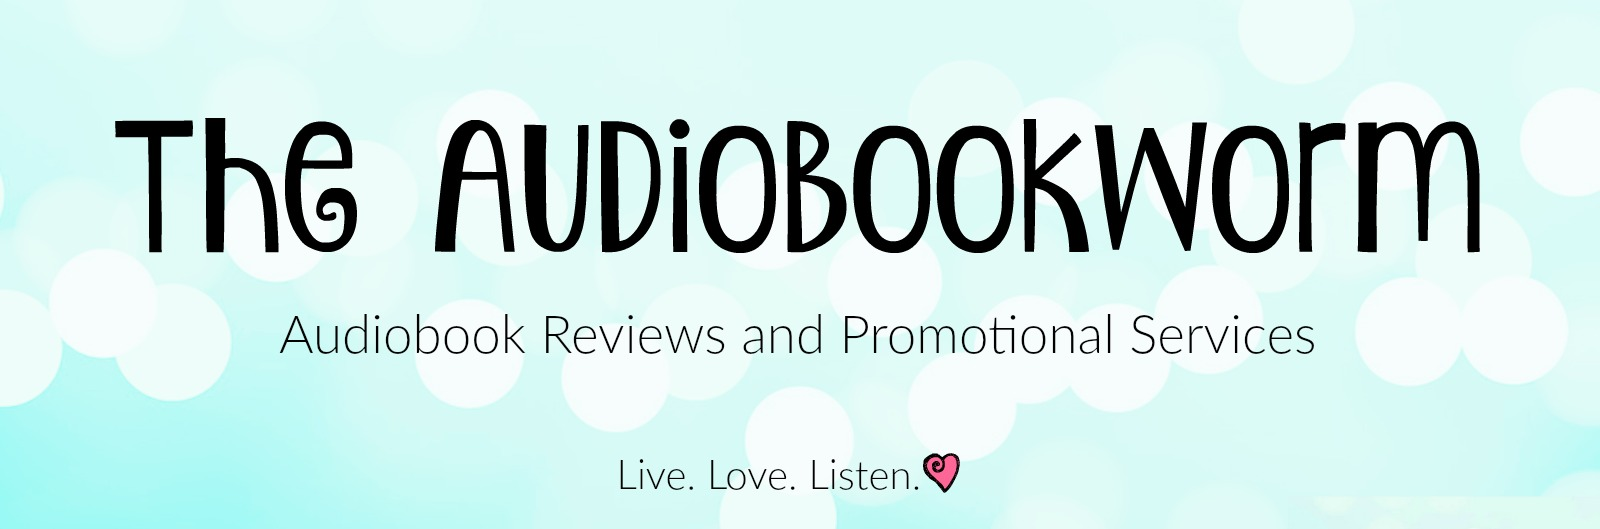 Category: The Weekly Audiobookworm